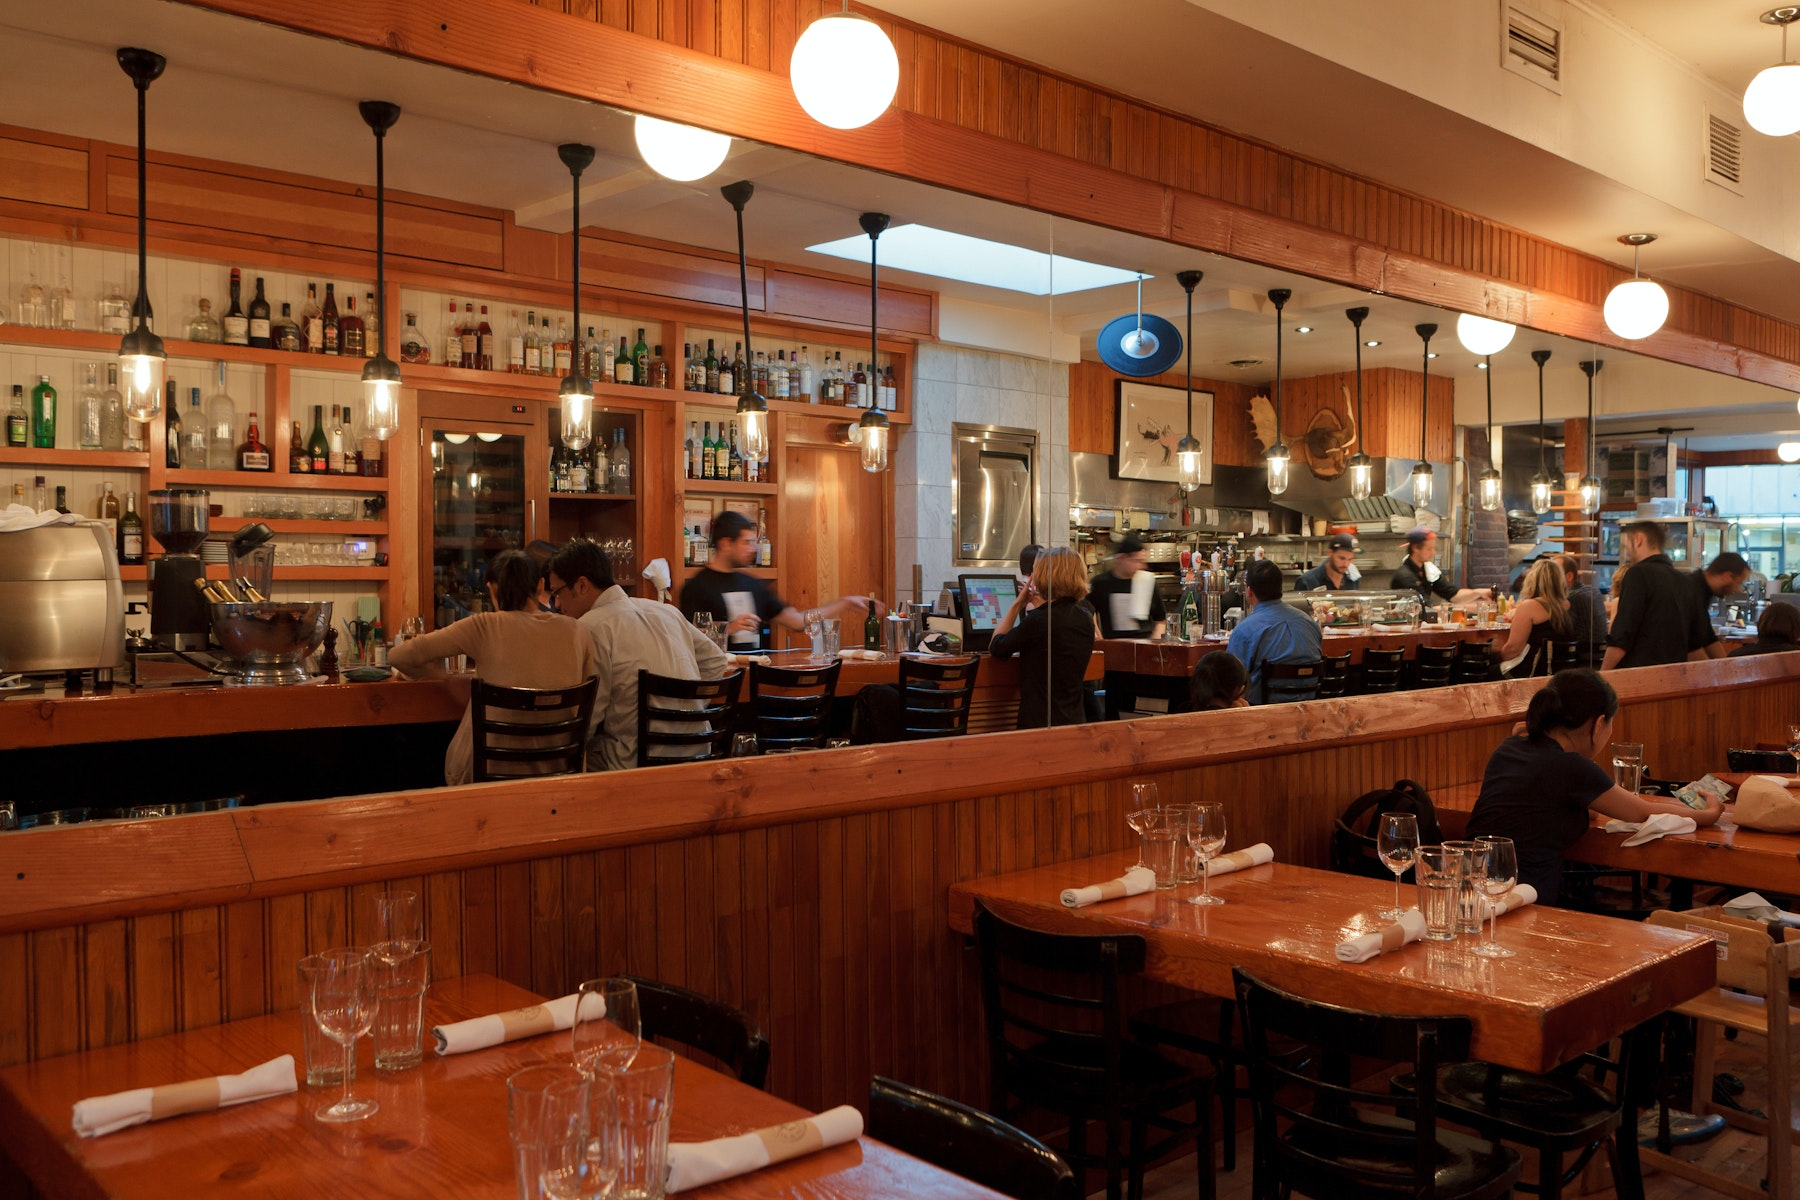 Au Pied de Cochon (pictured above) is one of more than 5,000 restaurants in Montreal.